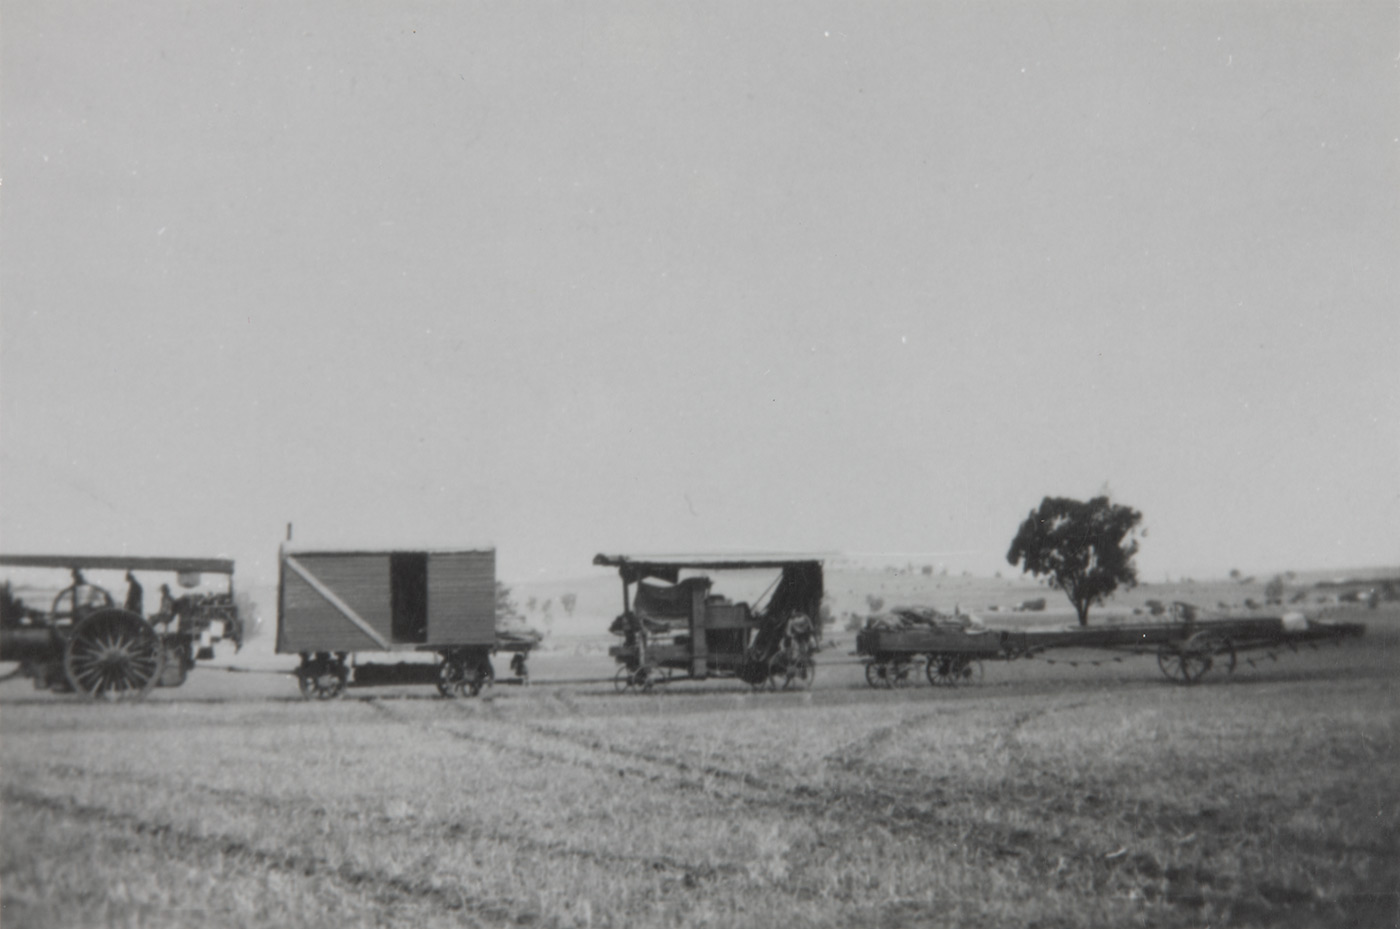 A steam-powered vehicle pulling two carriages and a trailer. - click to view larger image